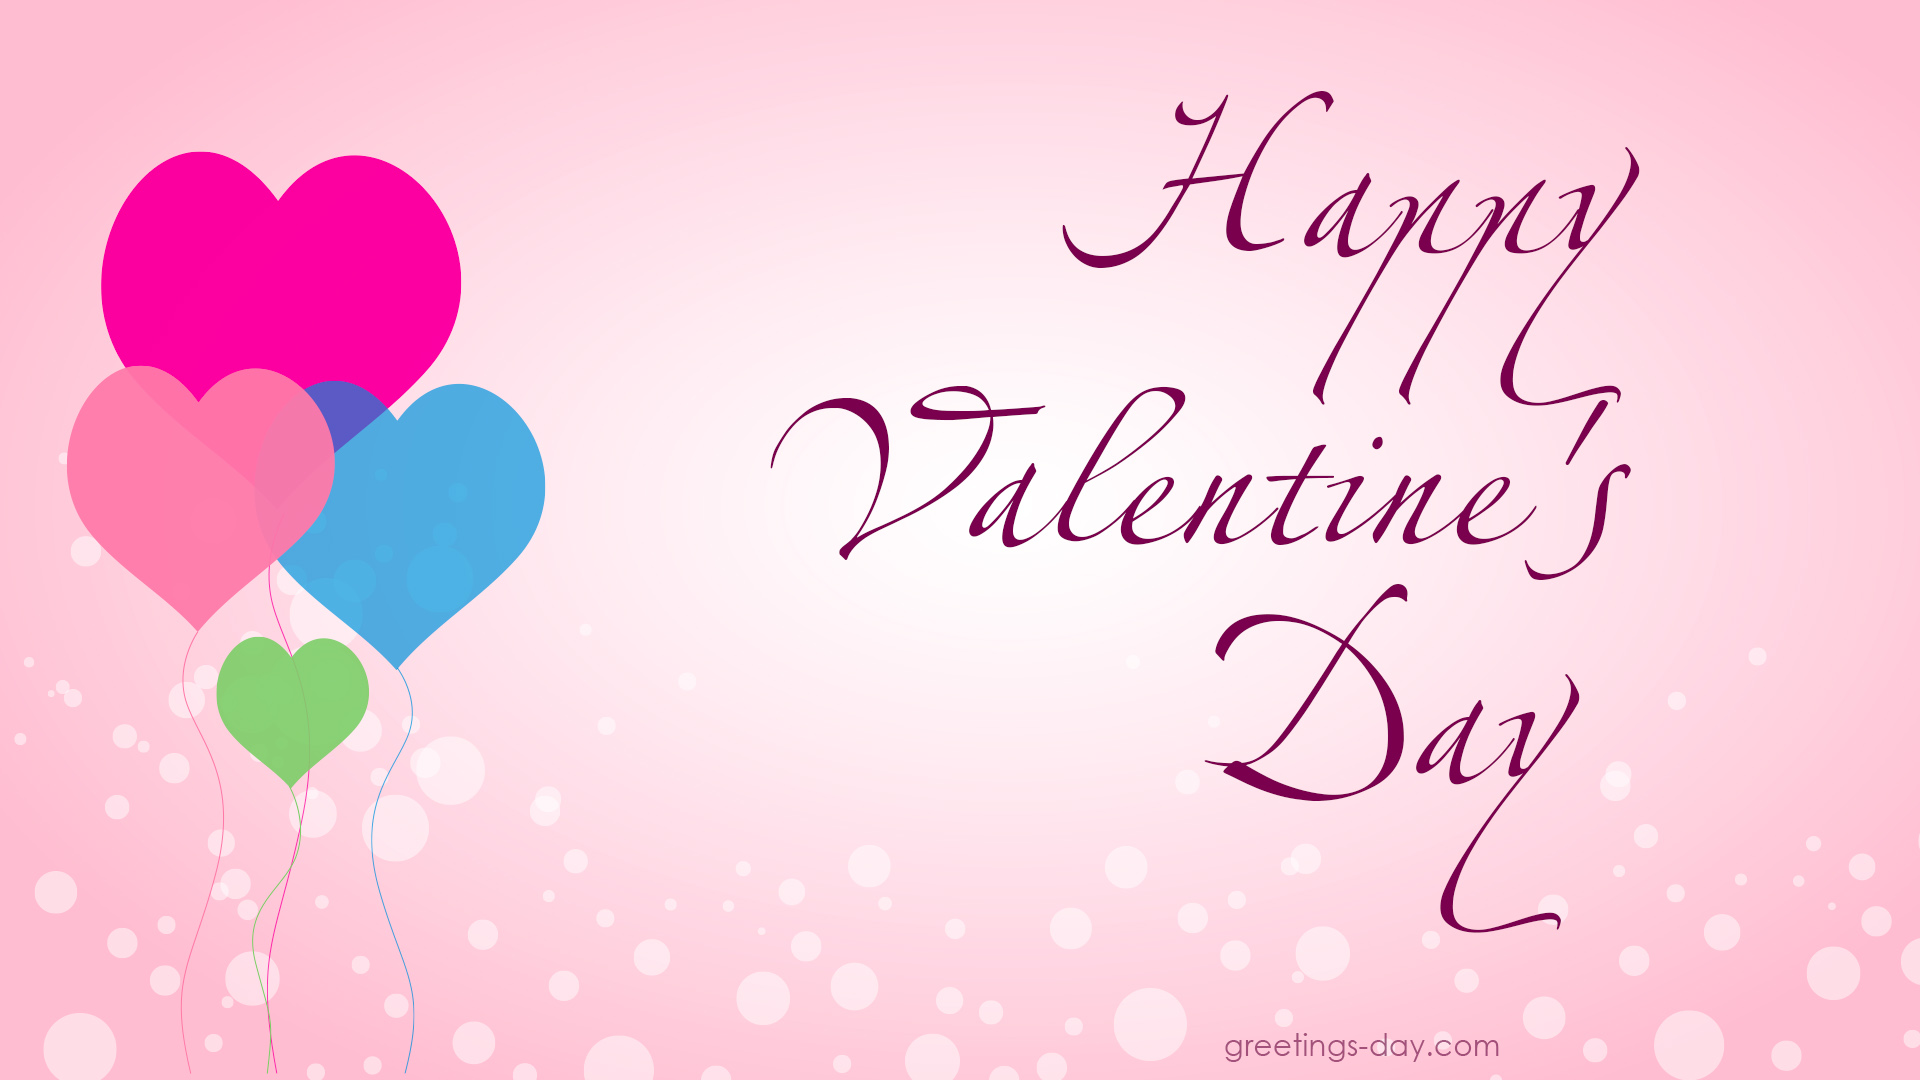 Valentines day poems congratulations you love with ecards happy valentines day poem m4hsunfo